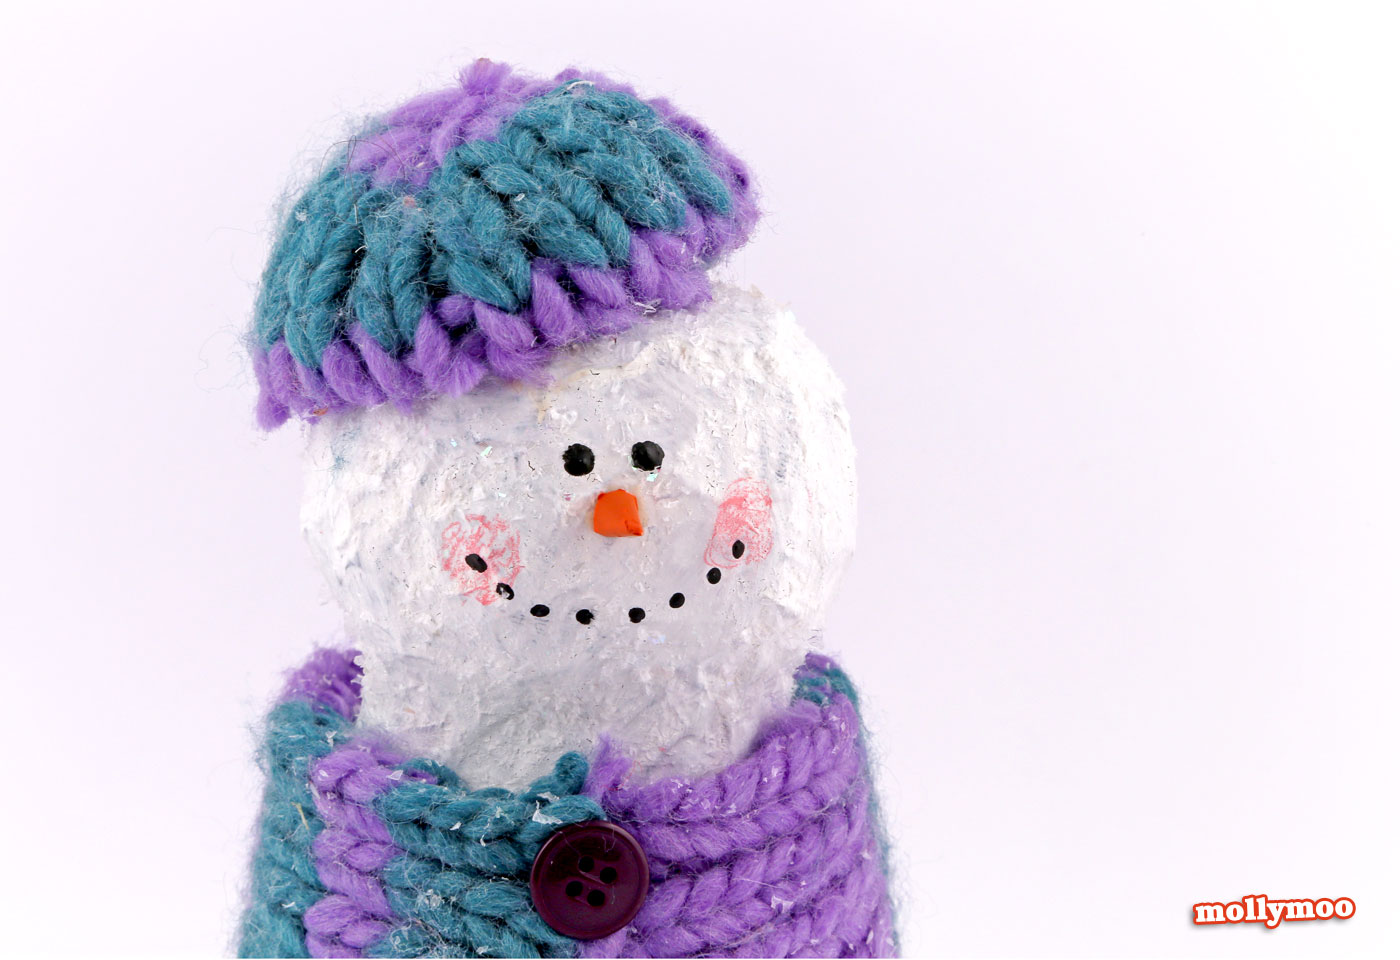 papier mache snowman, christmas crafts for kids